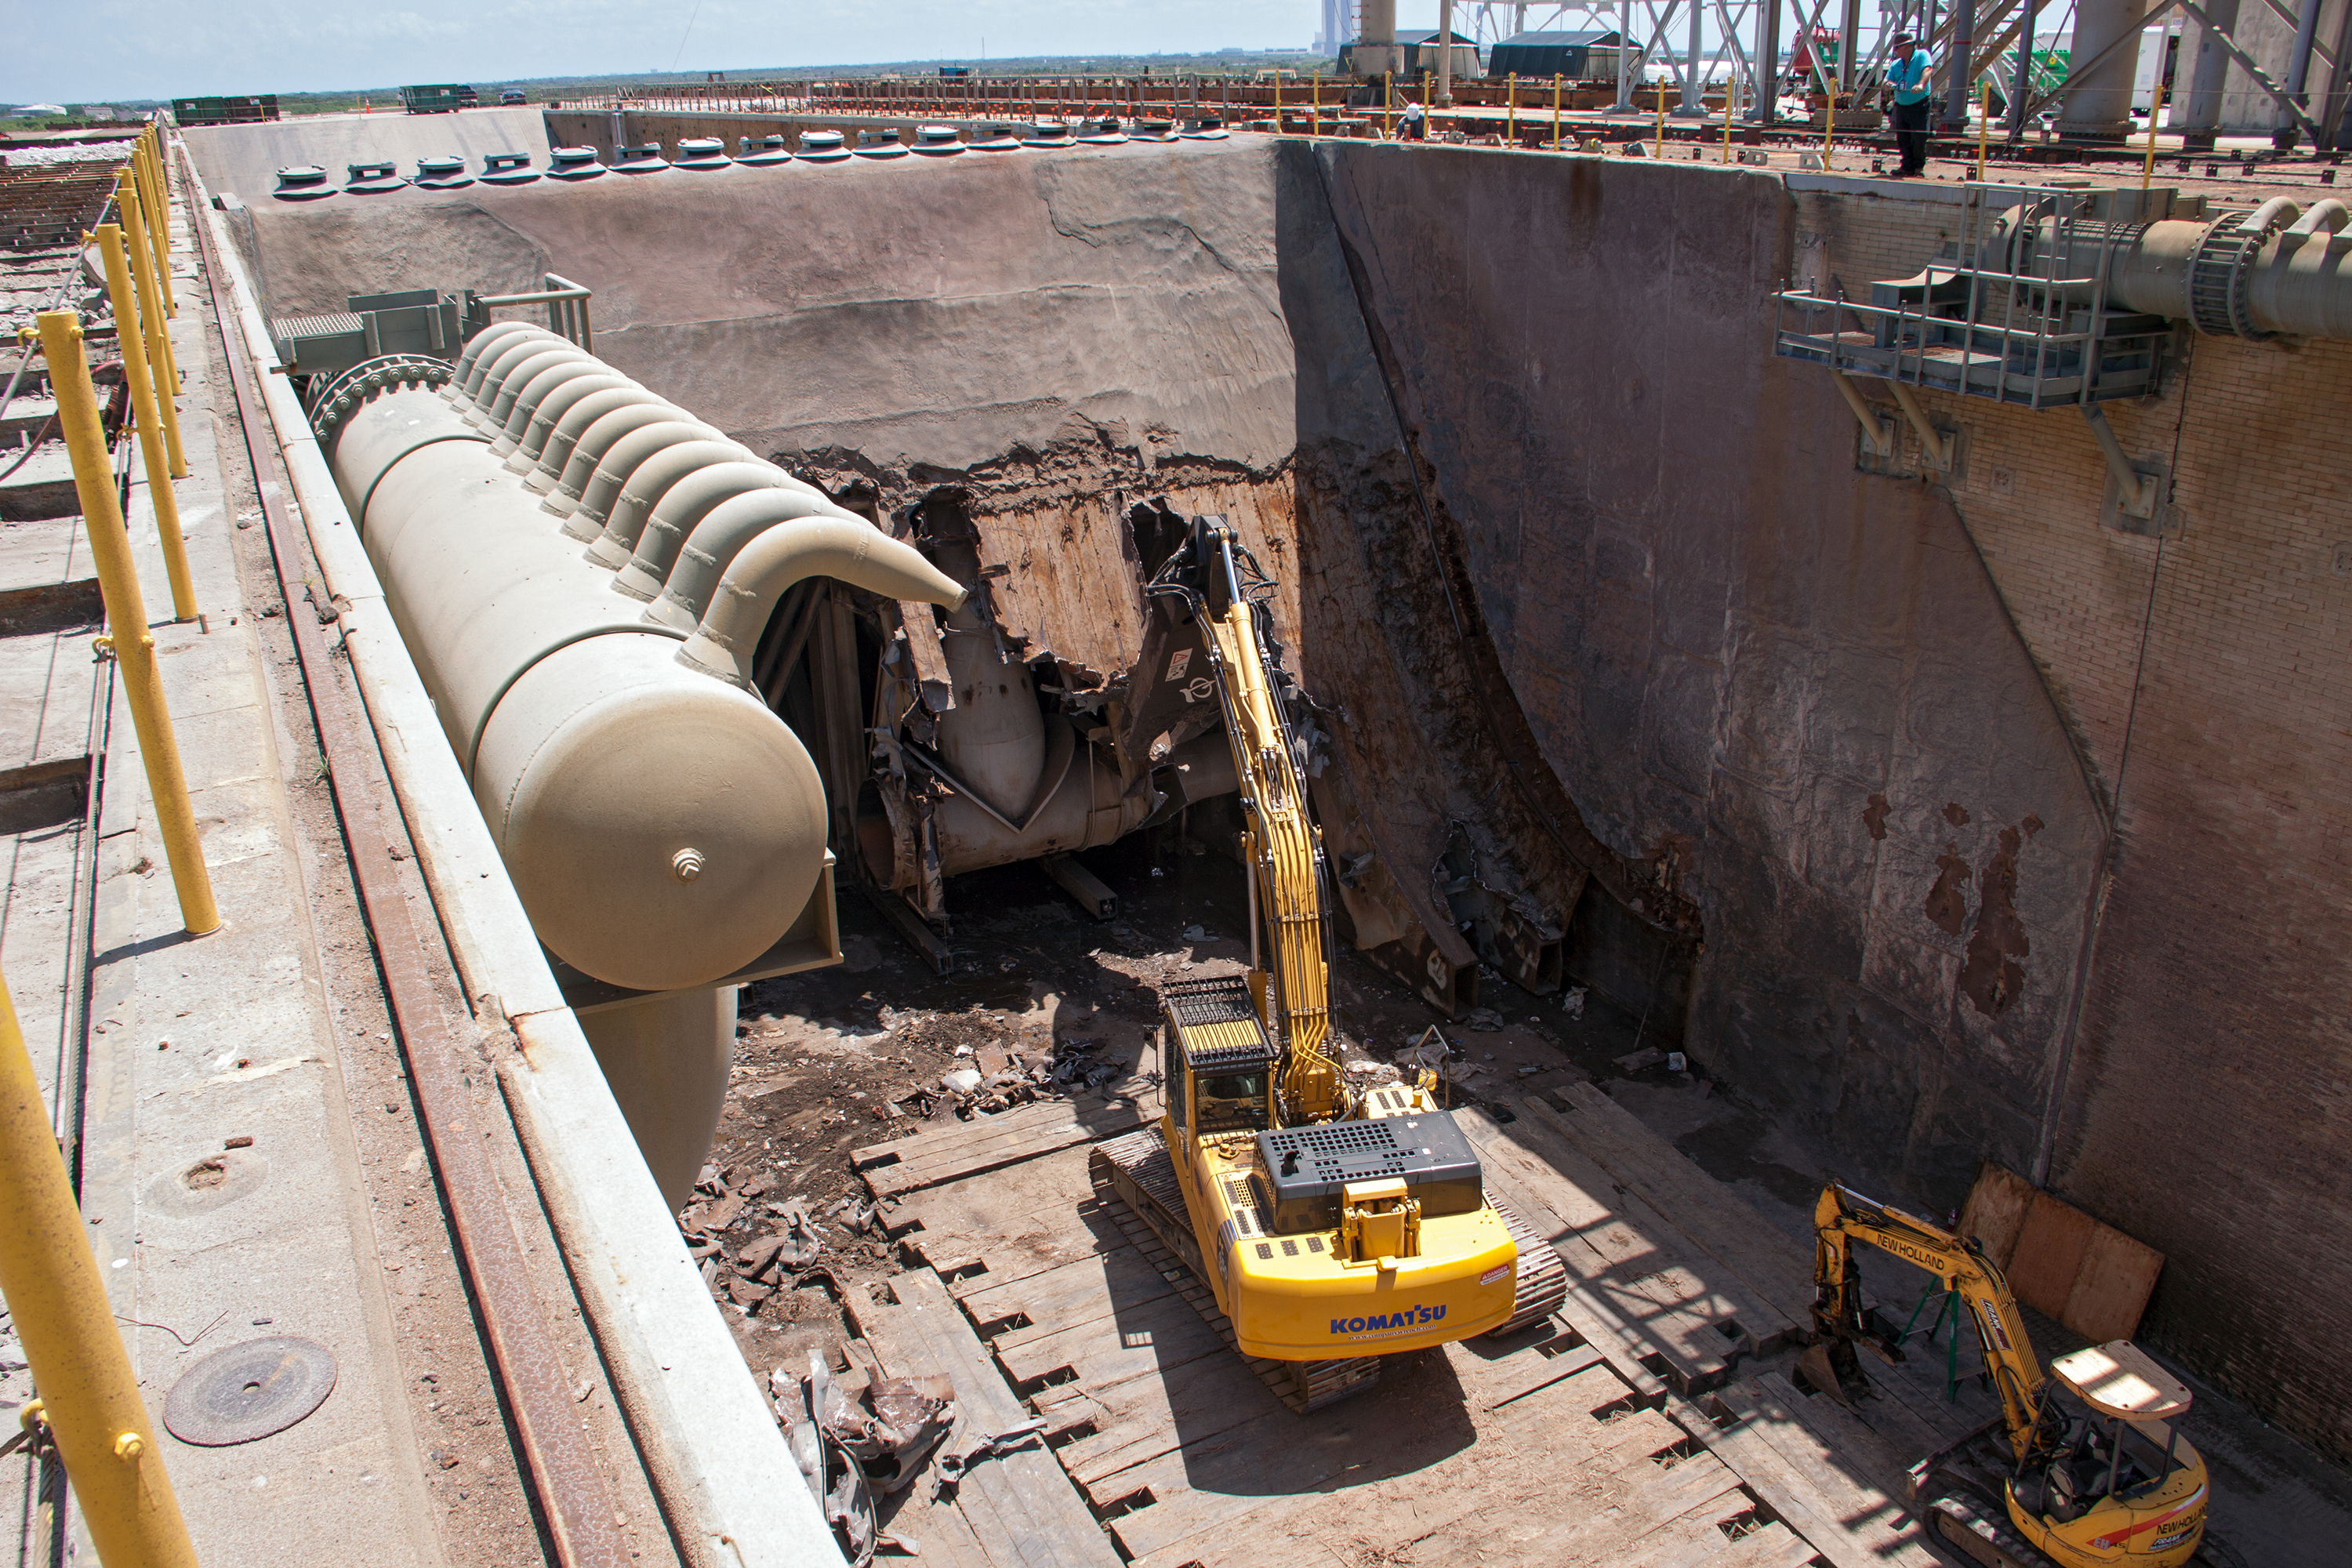 New Flame Trench will Support New Era at Launch Pad 39B | NASA